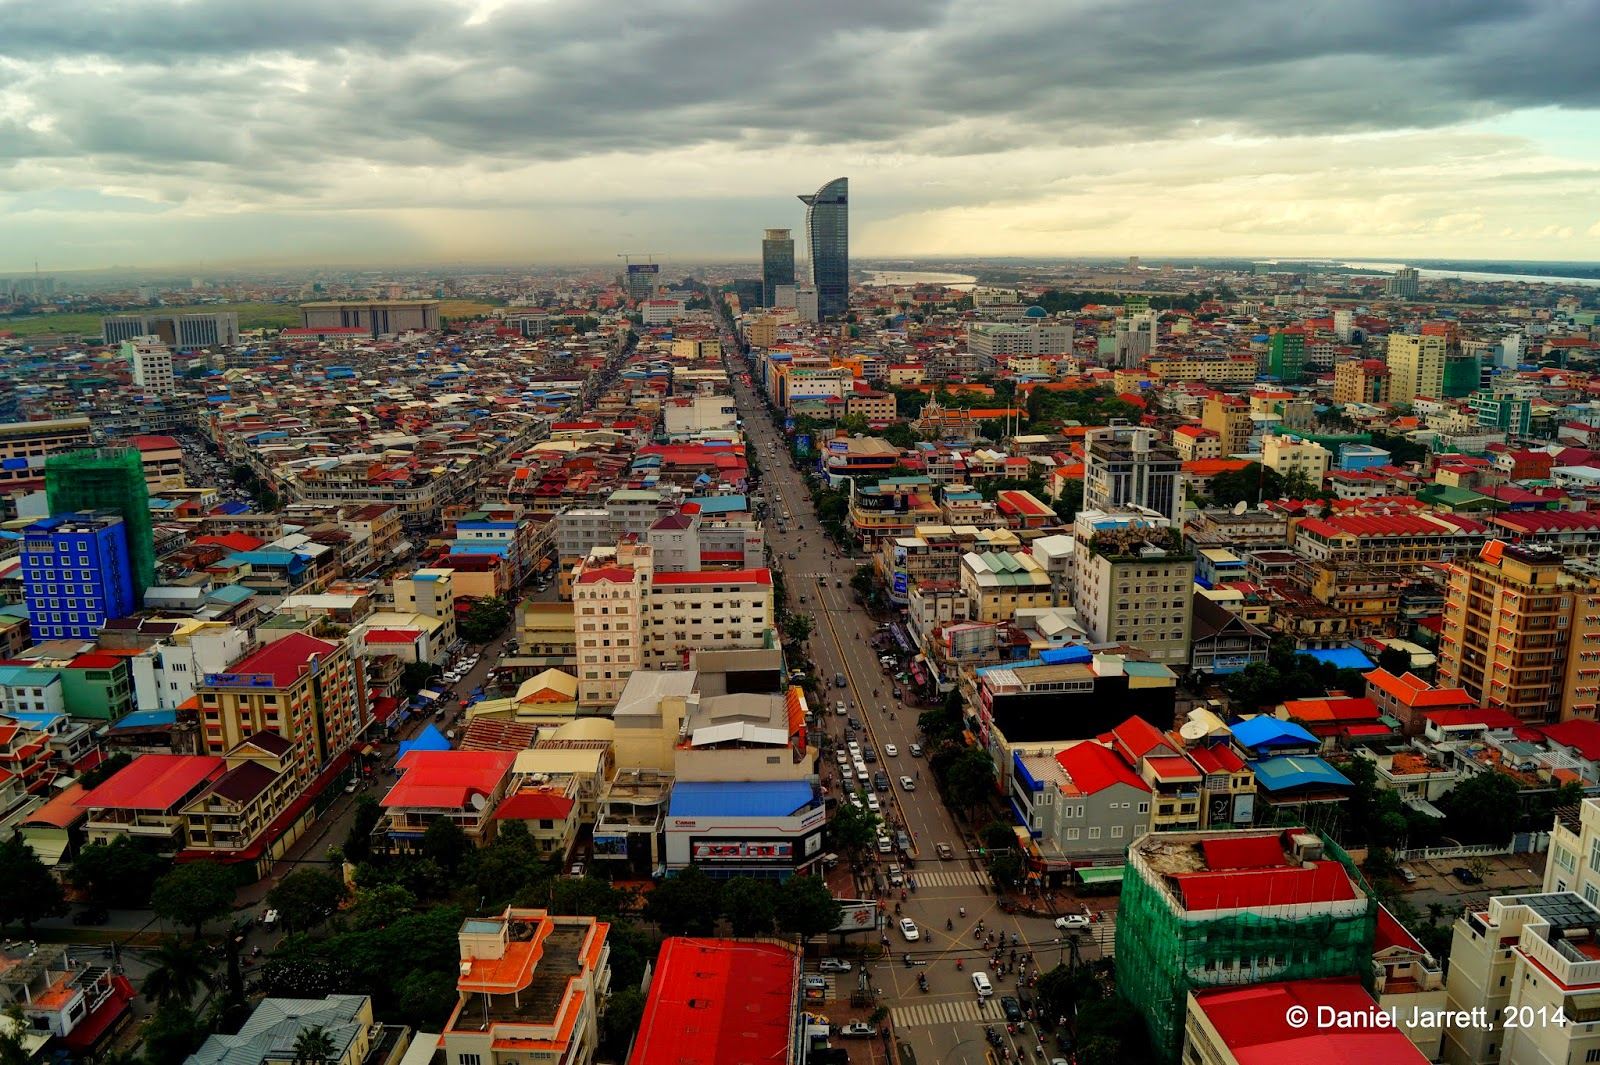 Phnom Penh from above